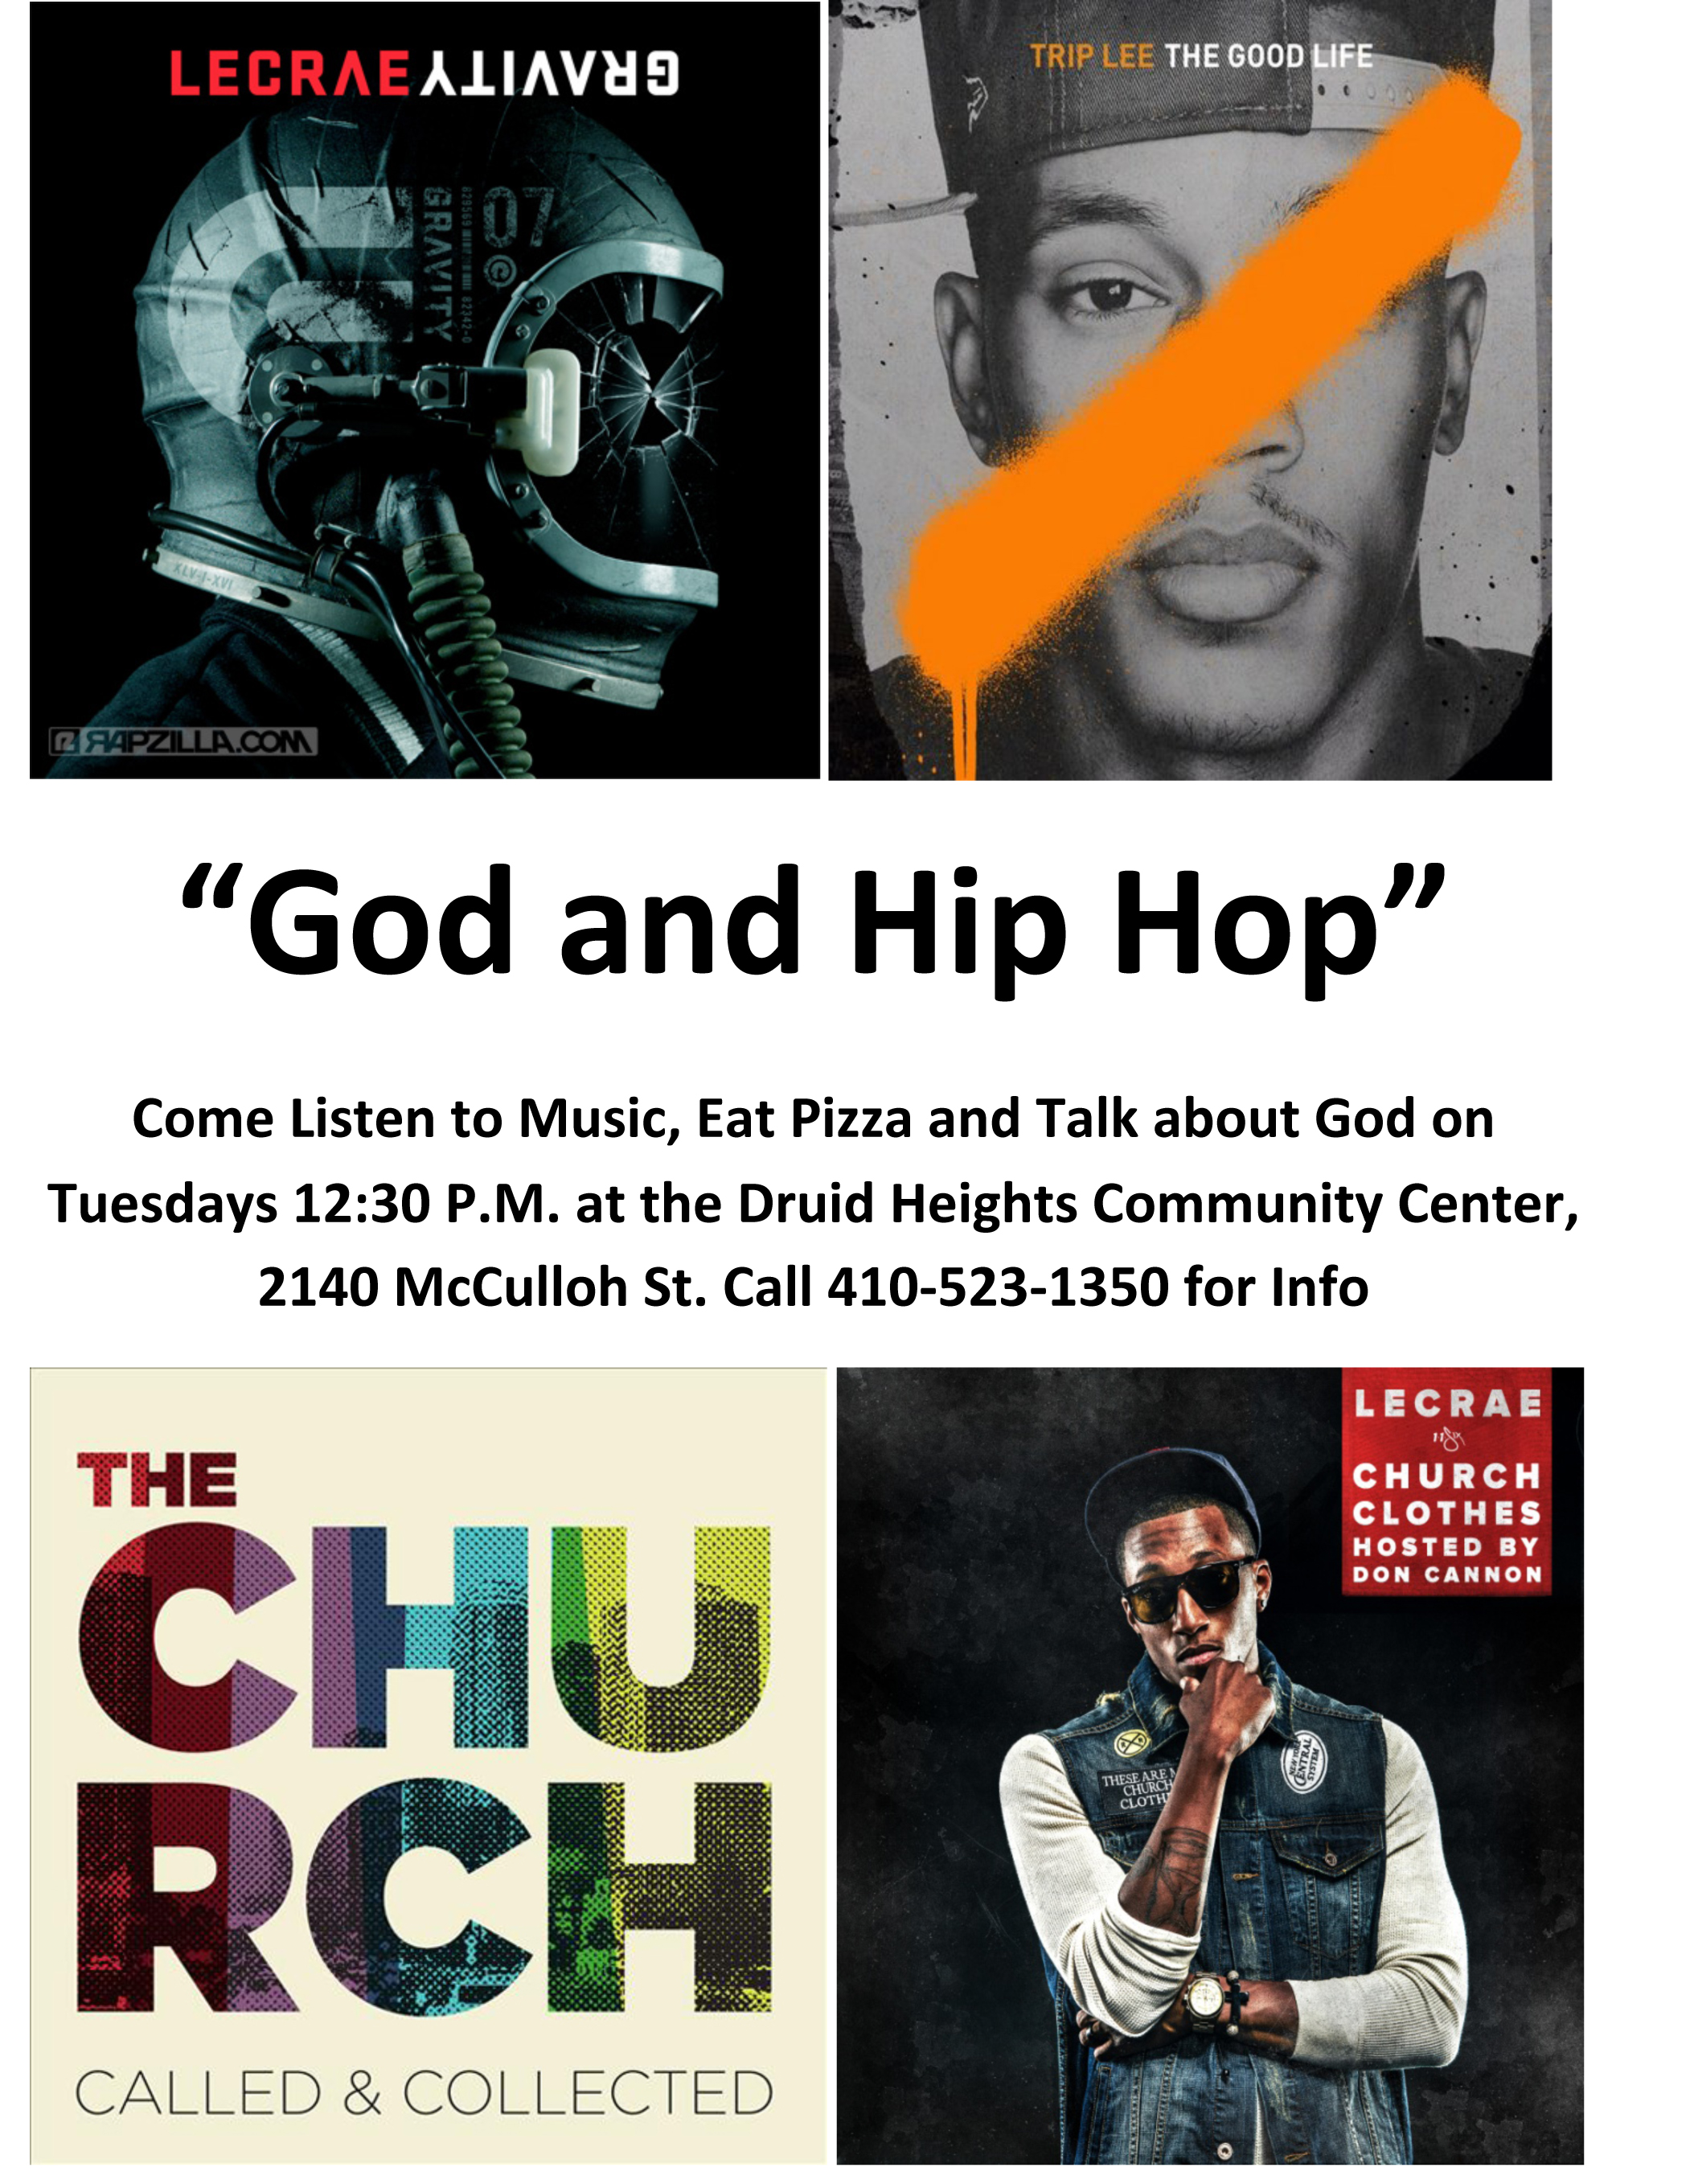 Microsoft Word - God and Hip Hop.docx